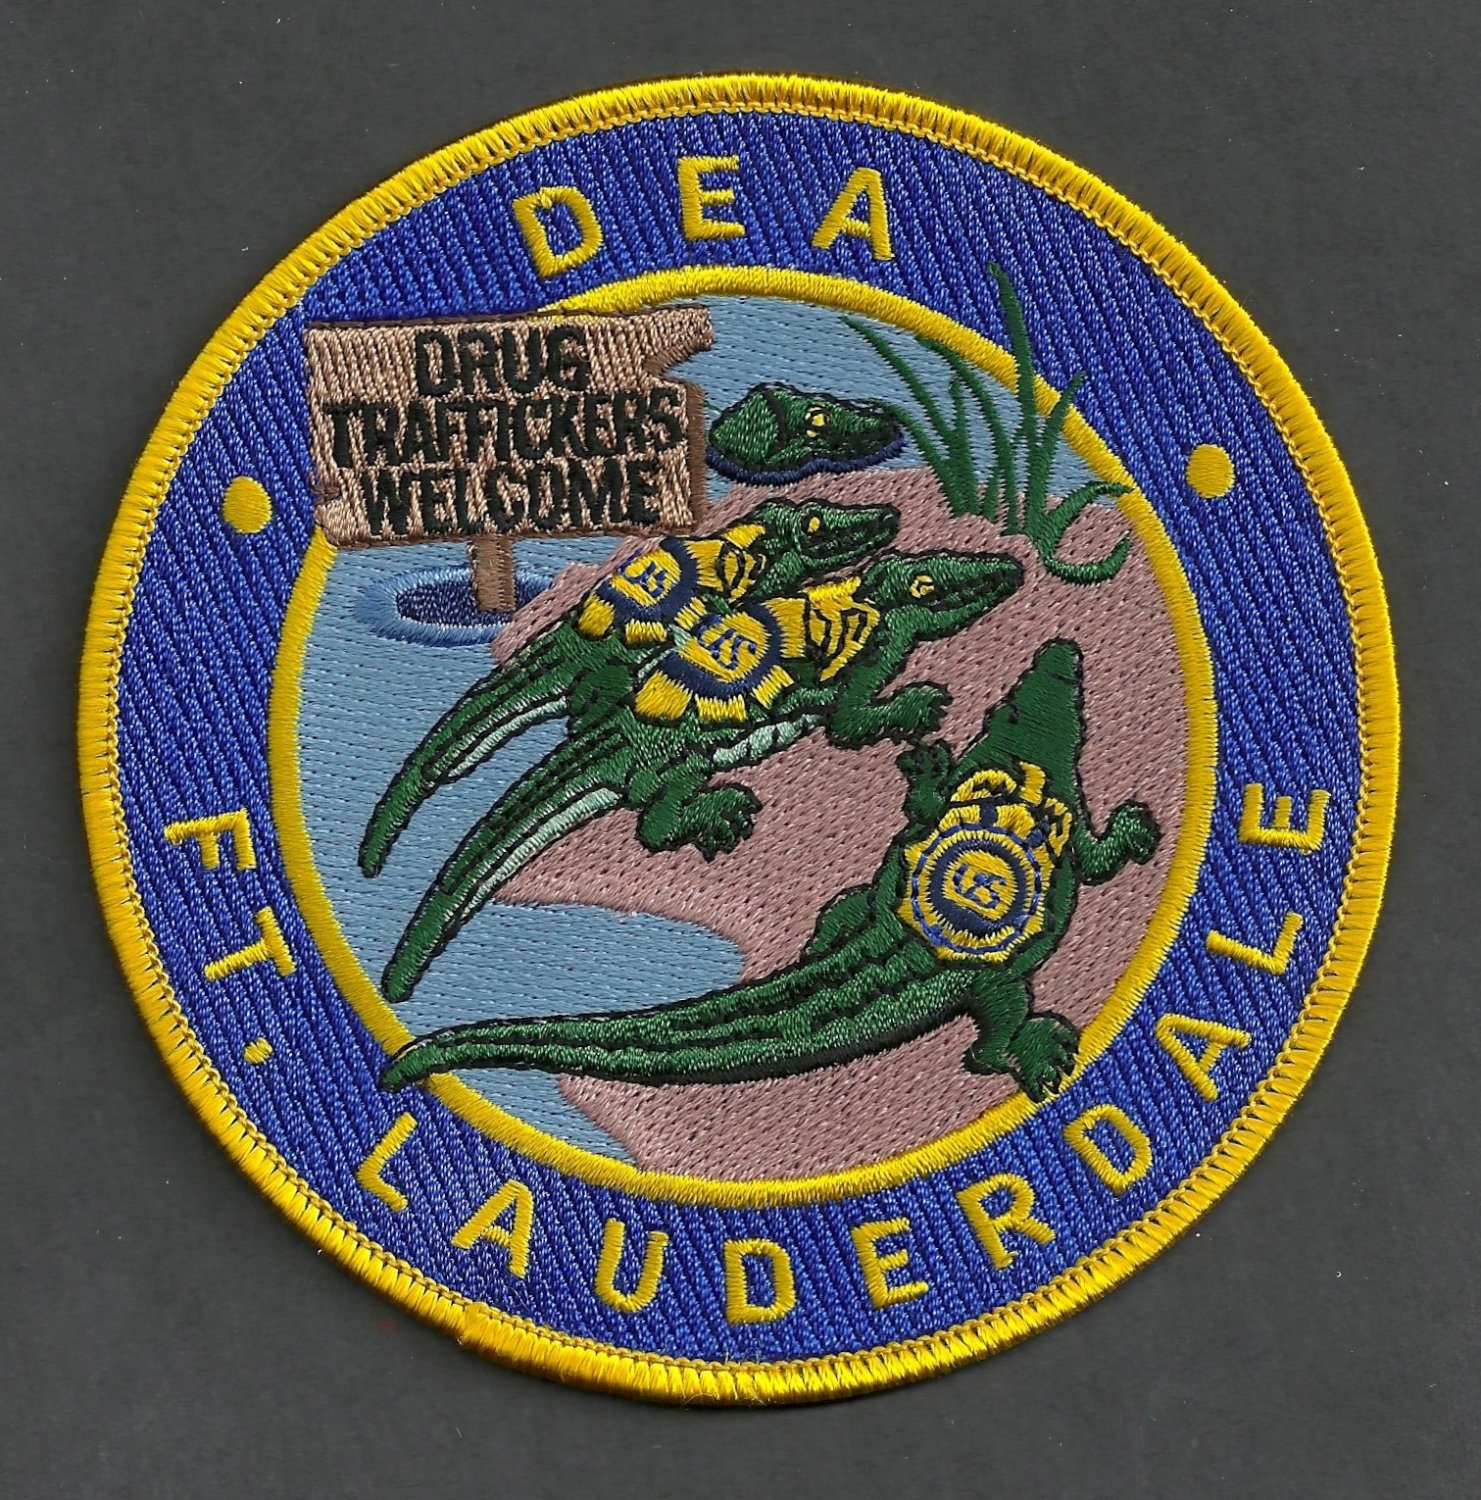 FORT LAUDERDALE POLICE DIVE TEAM  PATCH